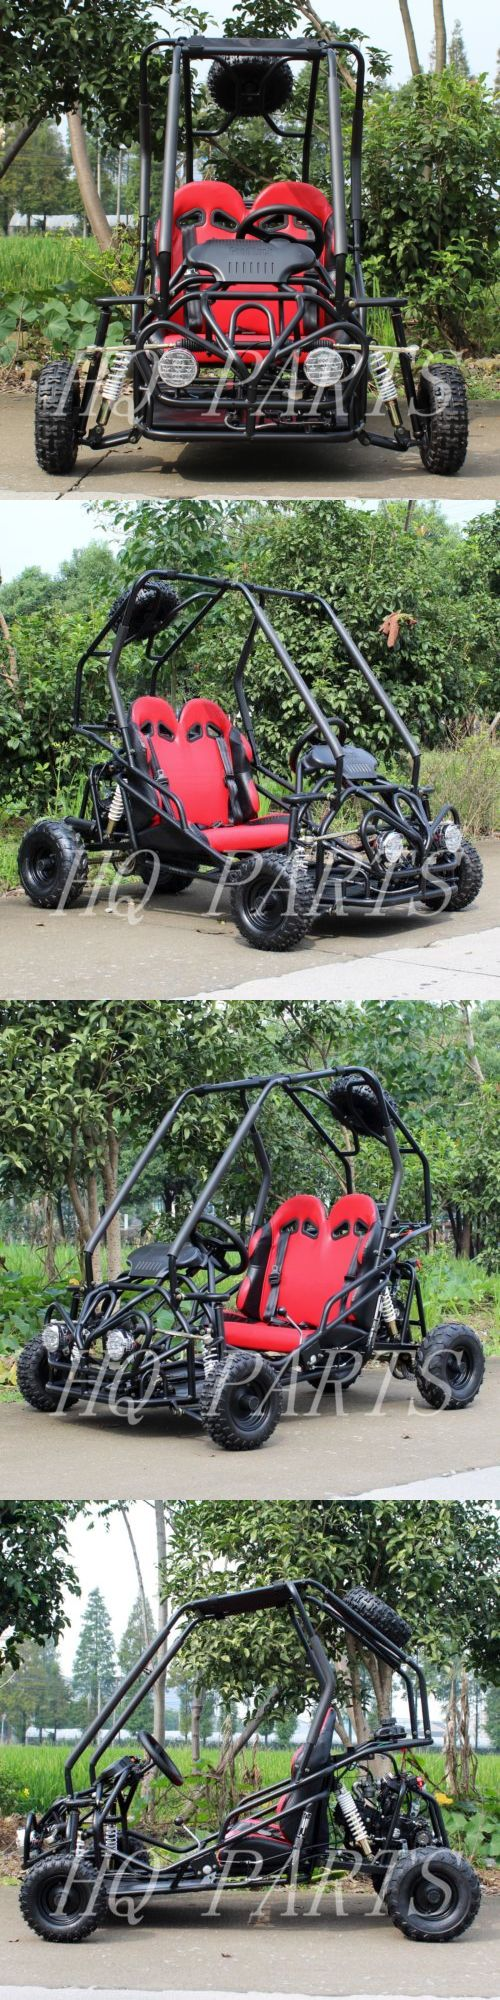 Complete Go-Karts and Frames 64656: Df-Moto 110Cc Go Kart Matte Black Df110gkb Steel Wheels With Free Spare Wheel -> BUY IT NOW ONLY: $999.99 on eBay!